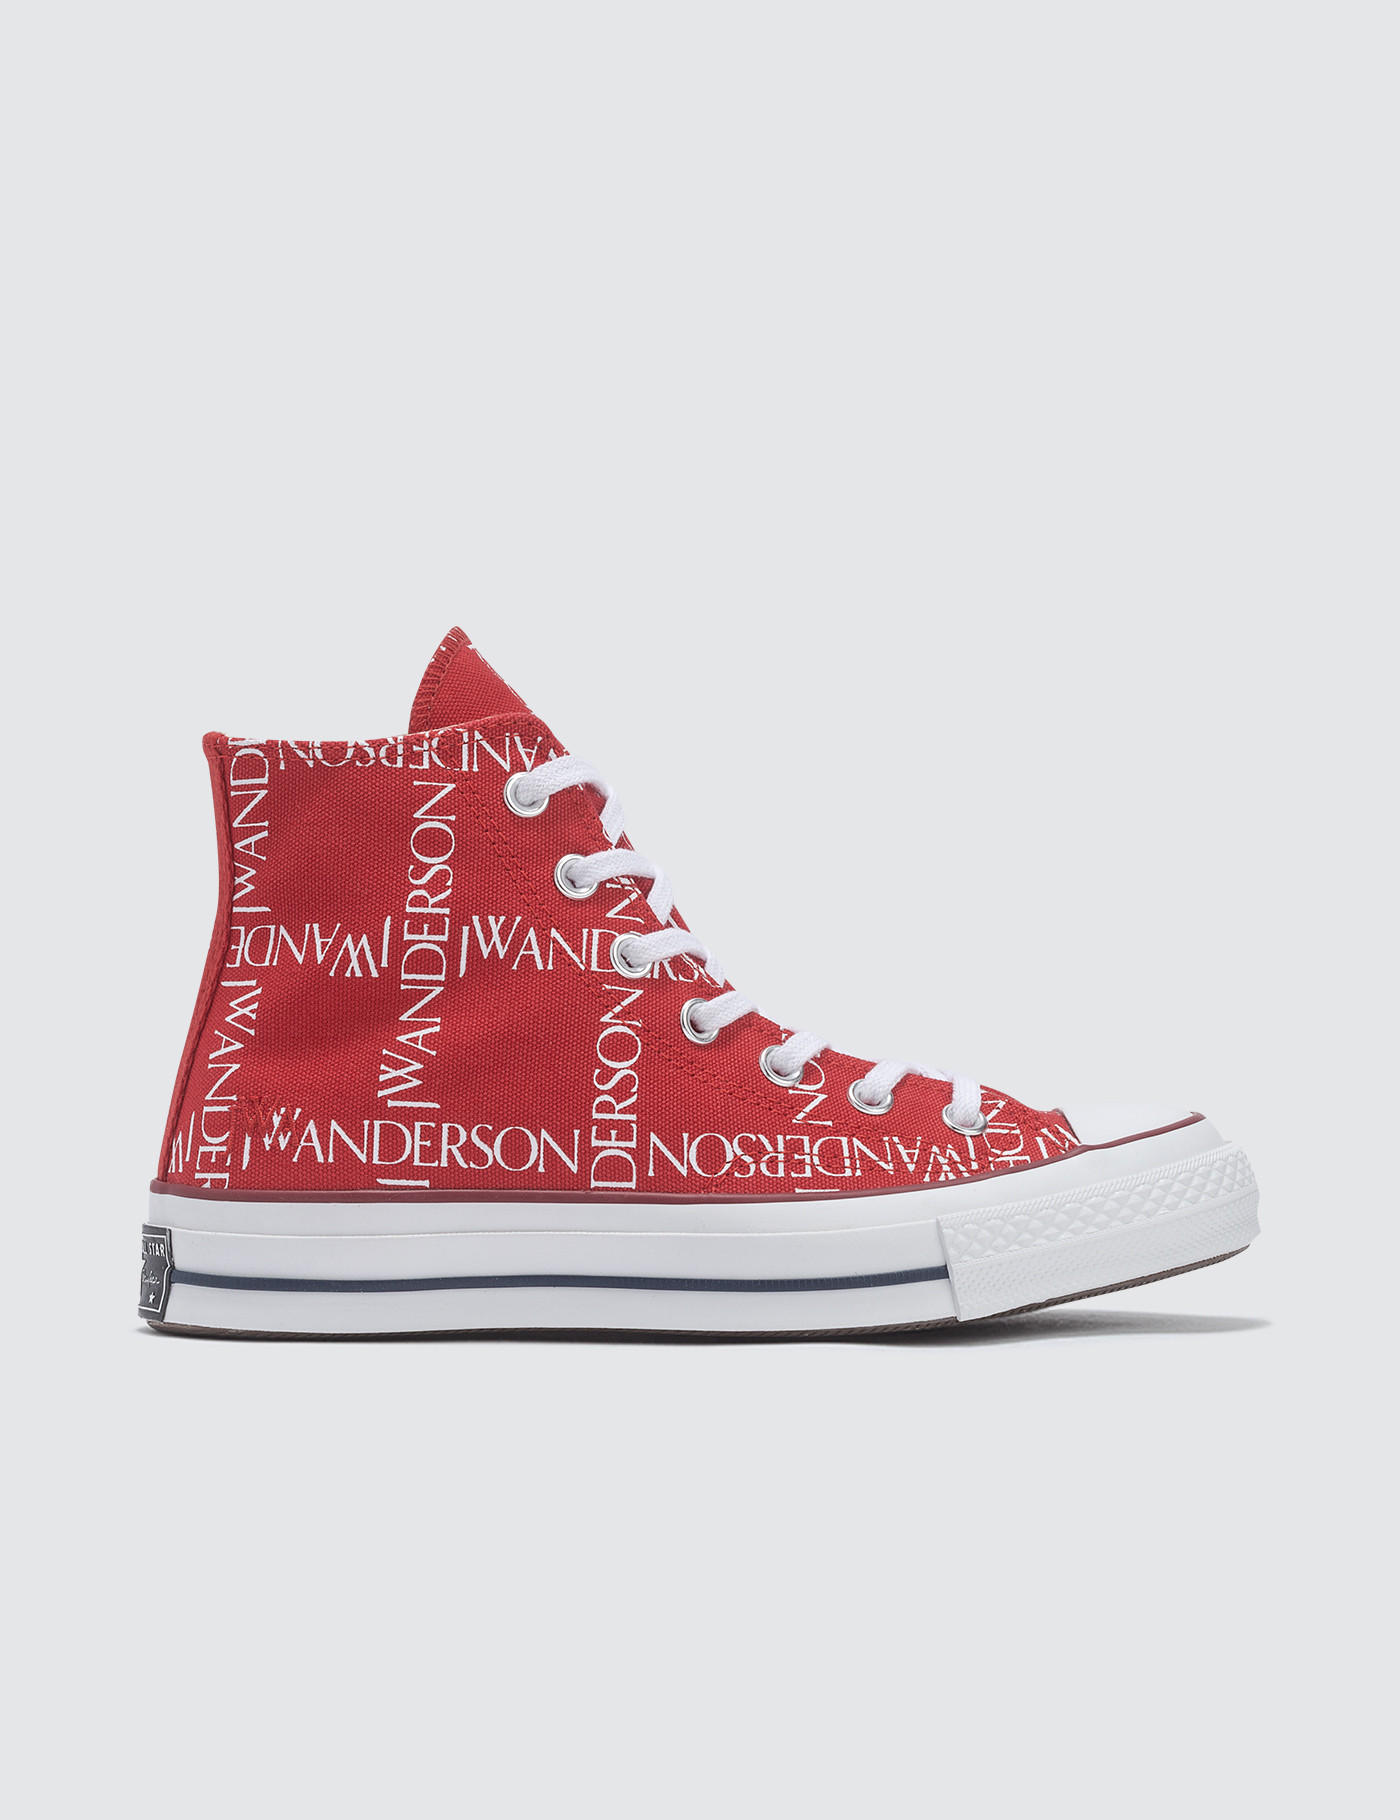 8f43ecc38082 Buy Original Converse JW Anderson x Chuck 70 Hi at Indonesia